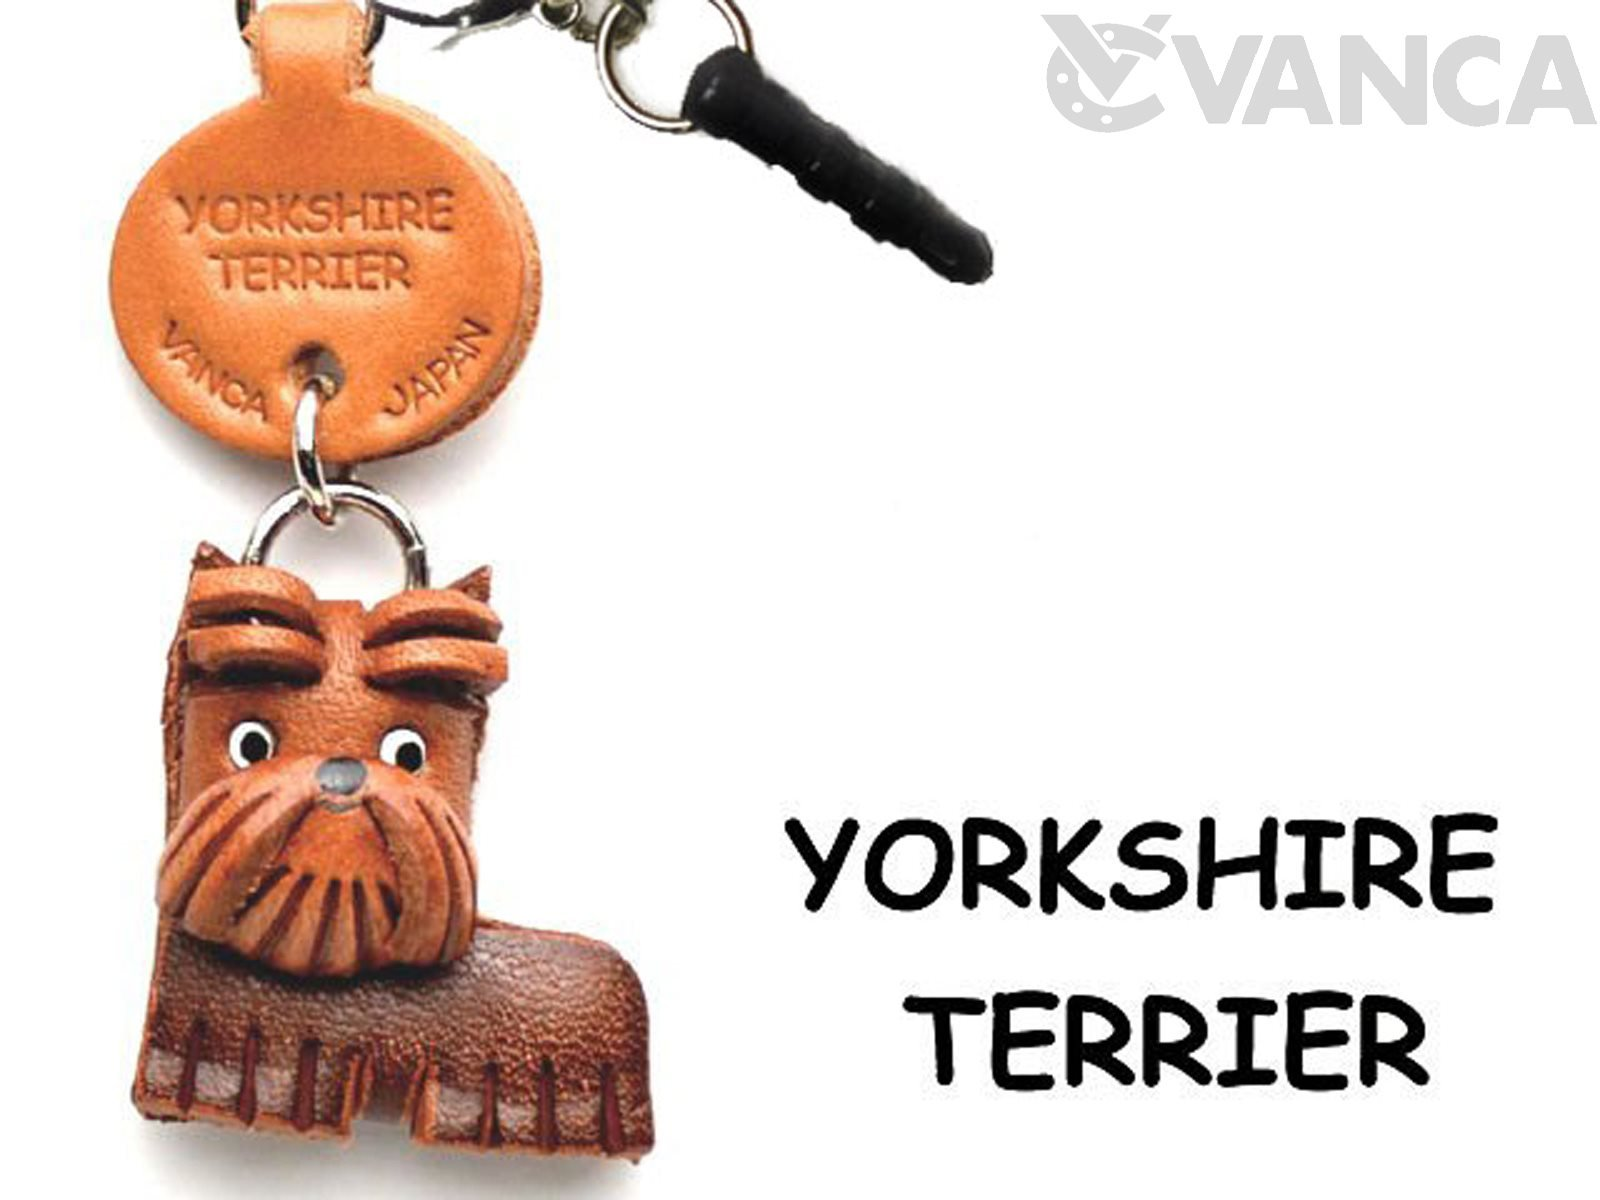 Yorkshire Terrier Leather Dog Earphone Jack Accessory / Dust Plug / Ear Cap / Ear Jack *VANCA* Made in Japan #47767